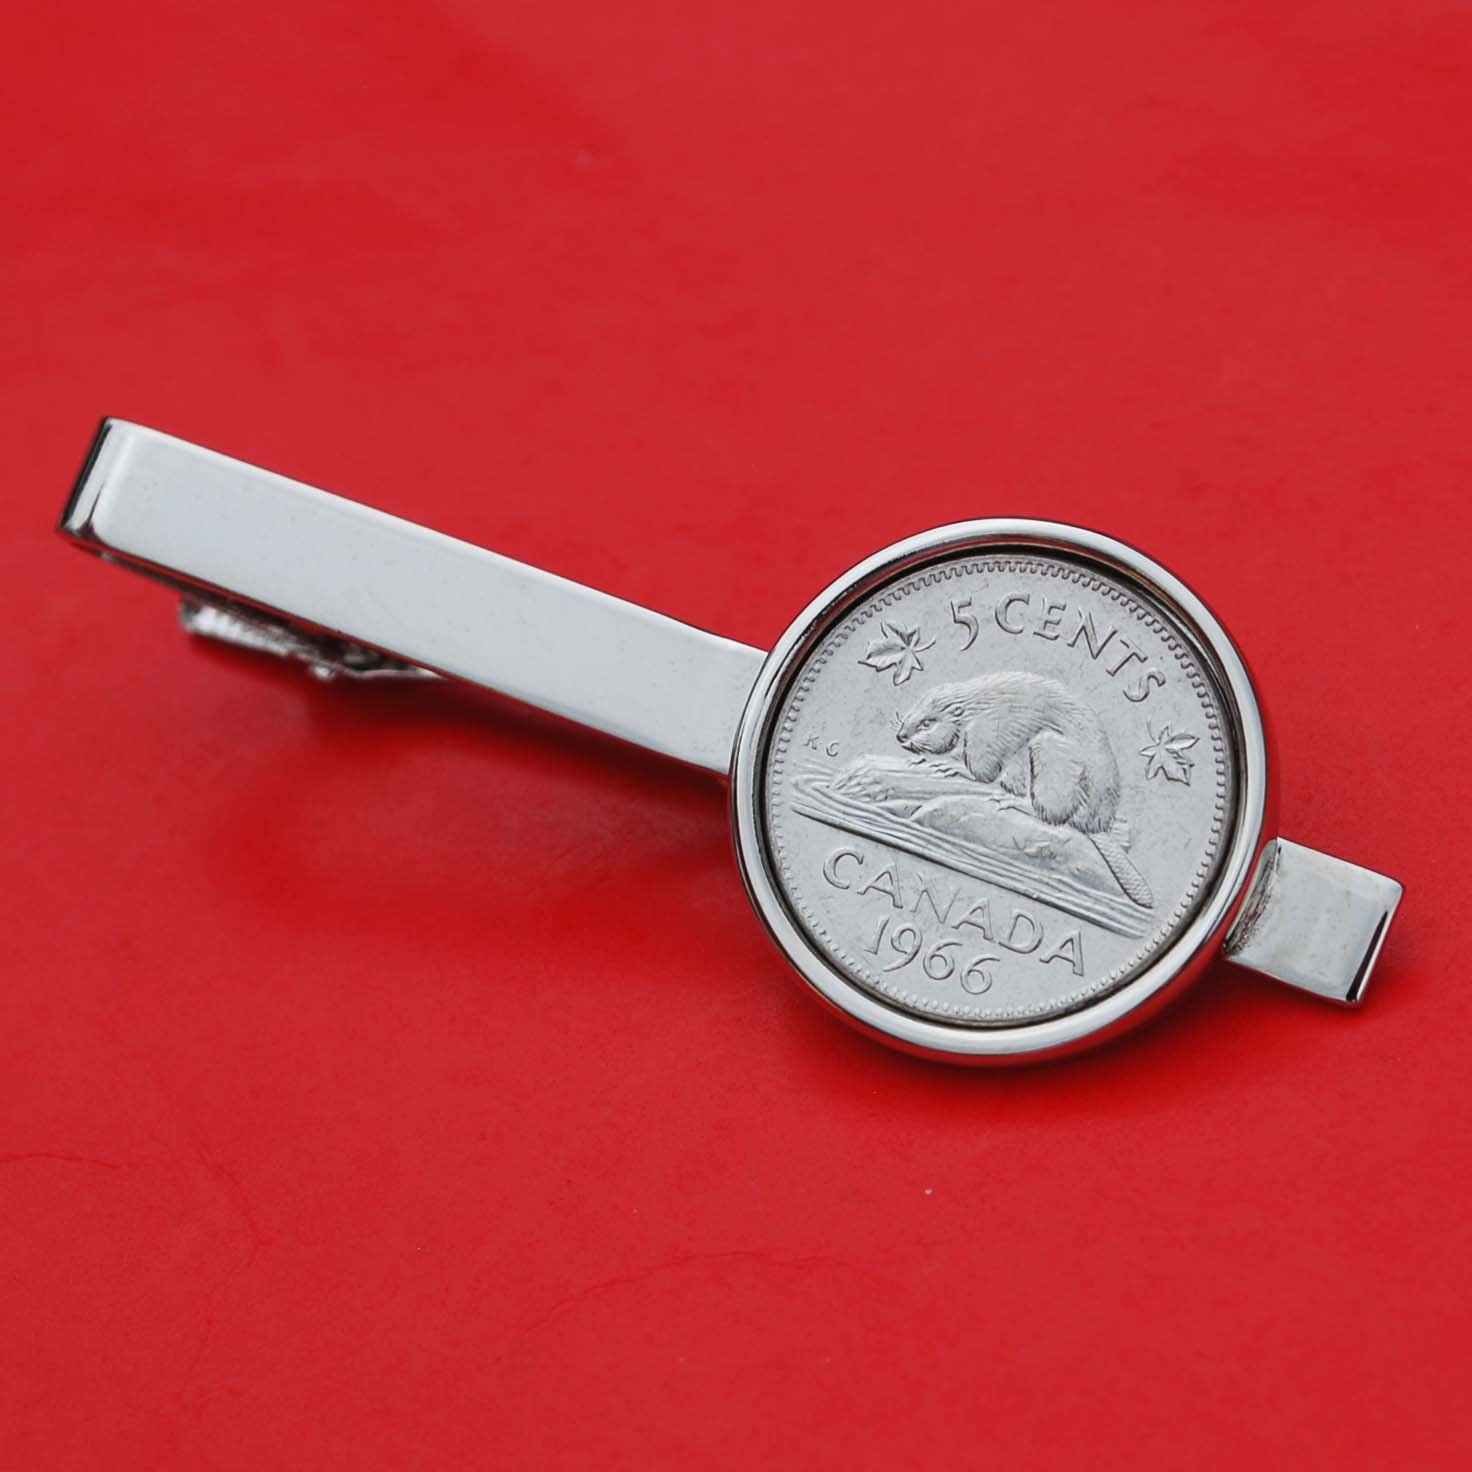 Canada 1966 Five Cents Gem BU Uncirculated Nickel Coin Silver Plated Tie Clip Clasp Bar - Wildlife Animal Beaver On Rock